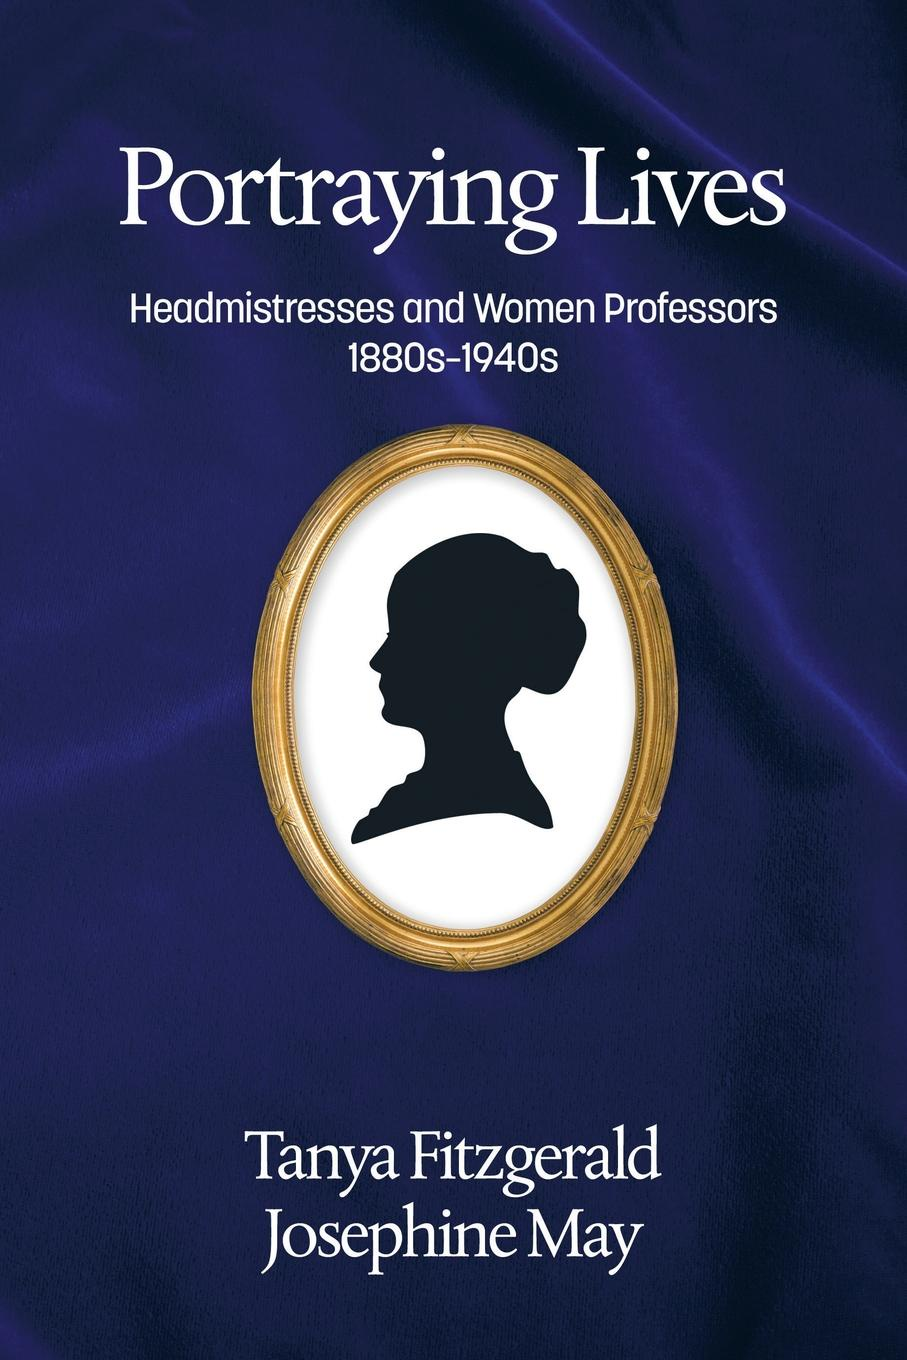 Tanya Fitzgerald, Josephine May Portraying lives. Headmistresses and Women Professors 1880s-1940s tanya fitzgerald josephine may portraying lives headmistresses and women professors 1880s 1940s